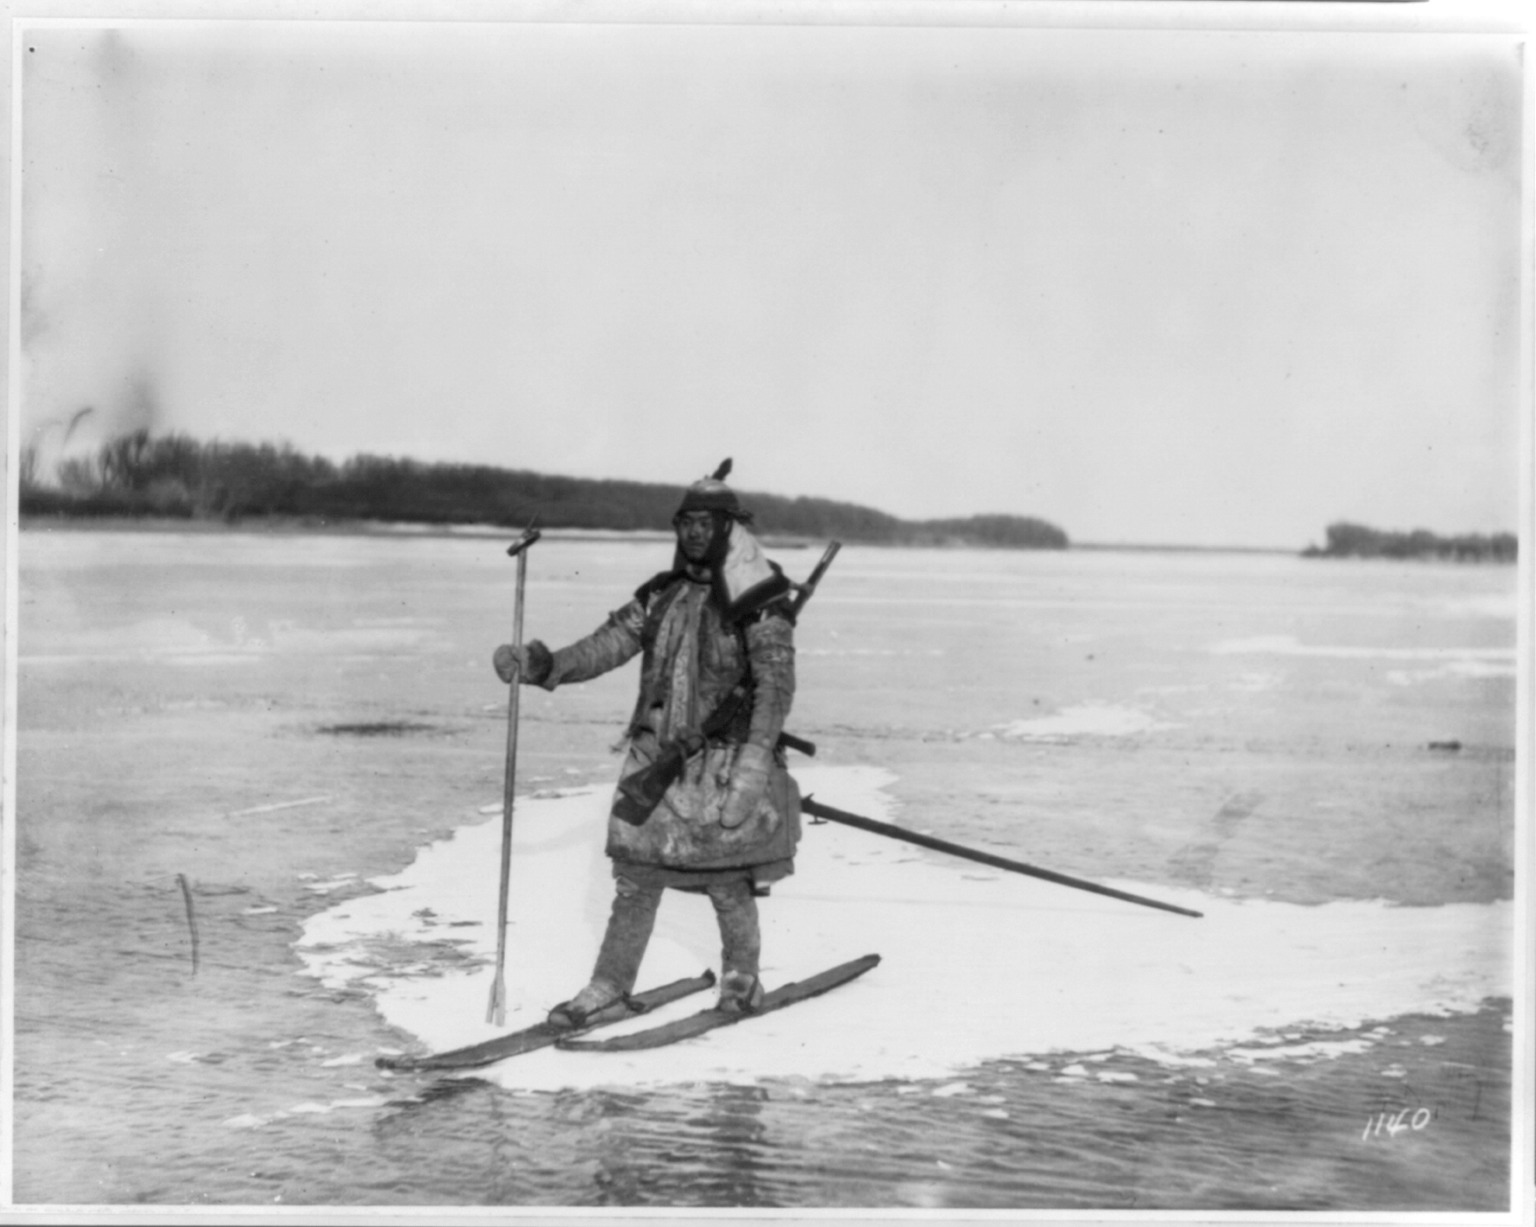 Goldes_hunter_on_skis_on_ice_floe,_with_